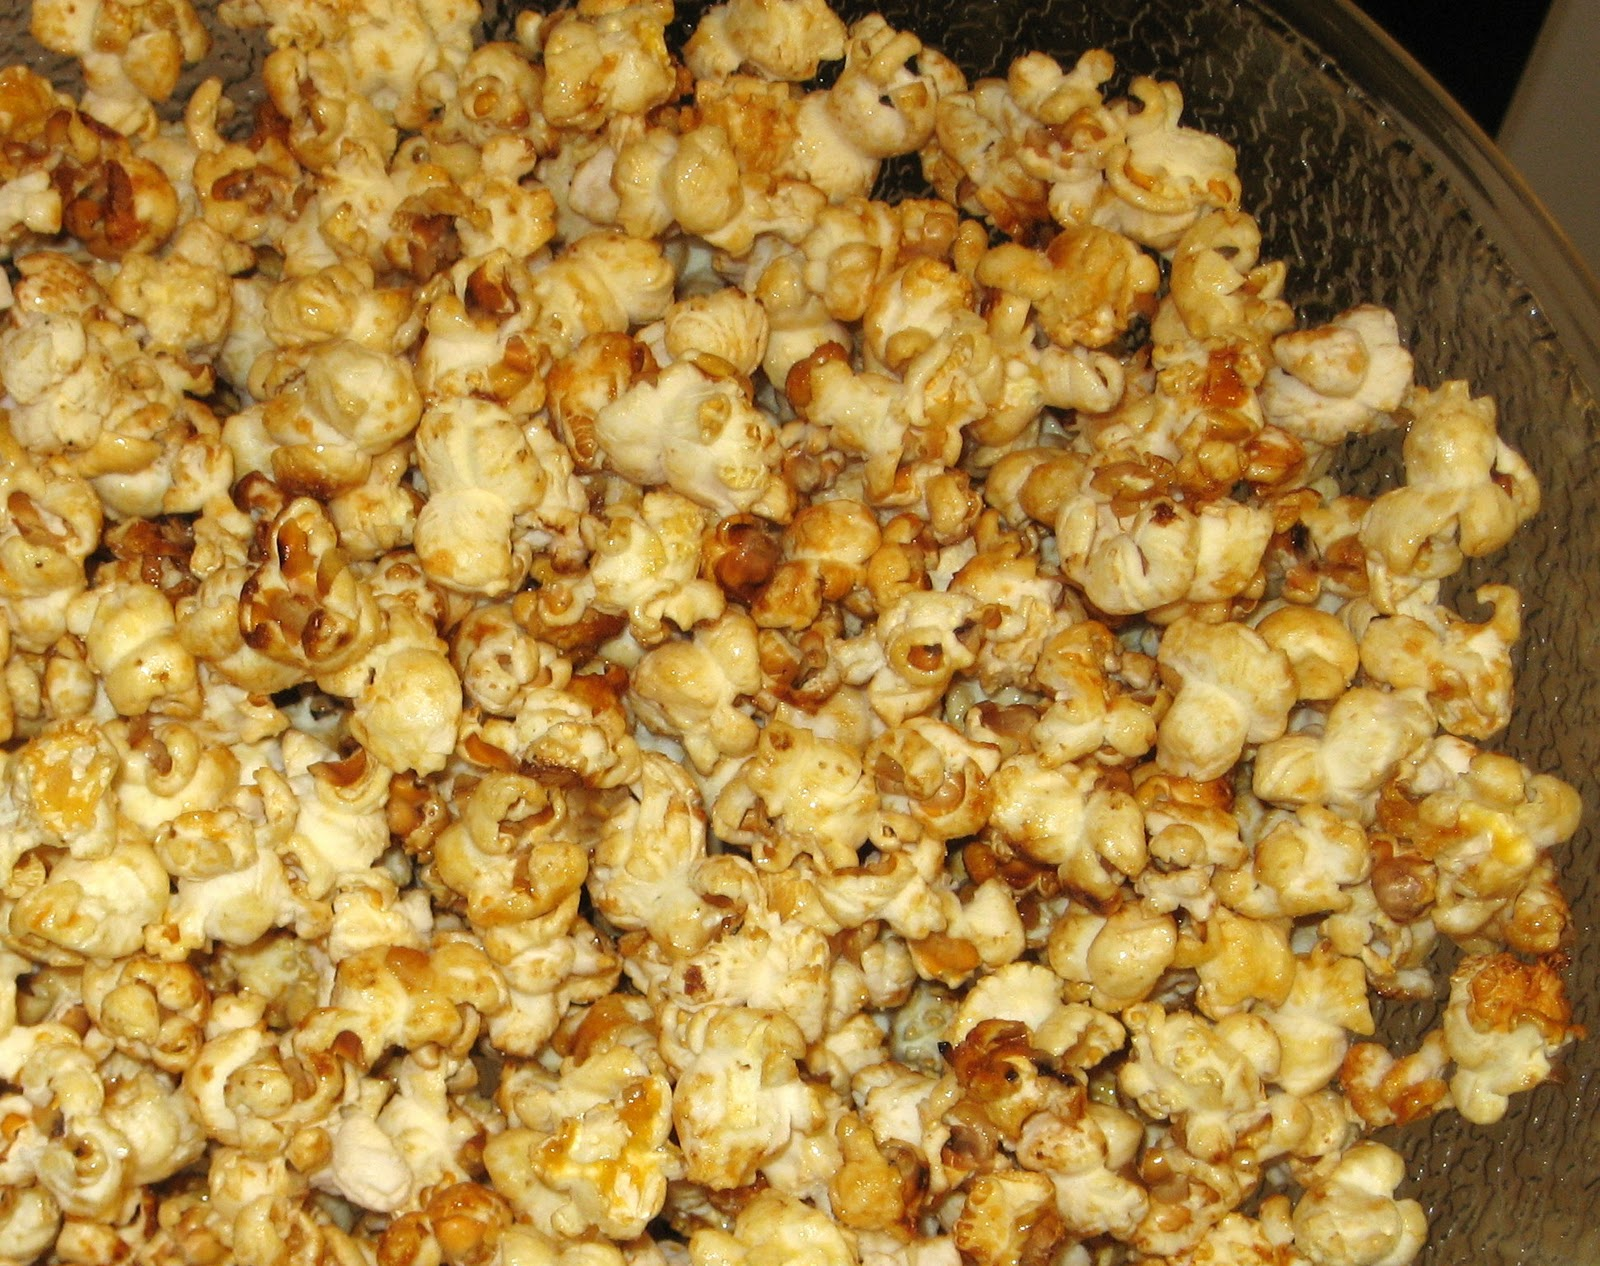 Mormon Mavens in the Kitchen: Homemade Kettle Corn